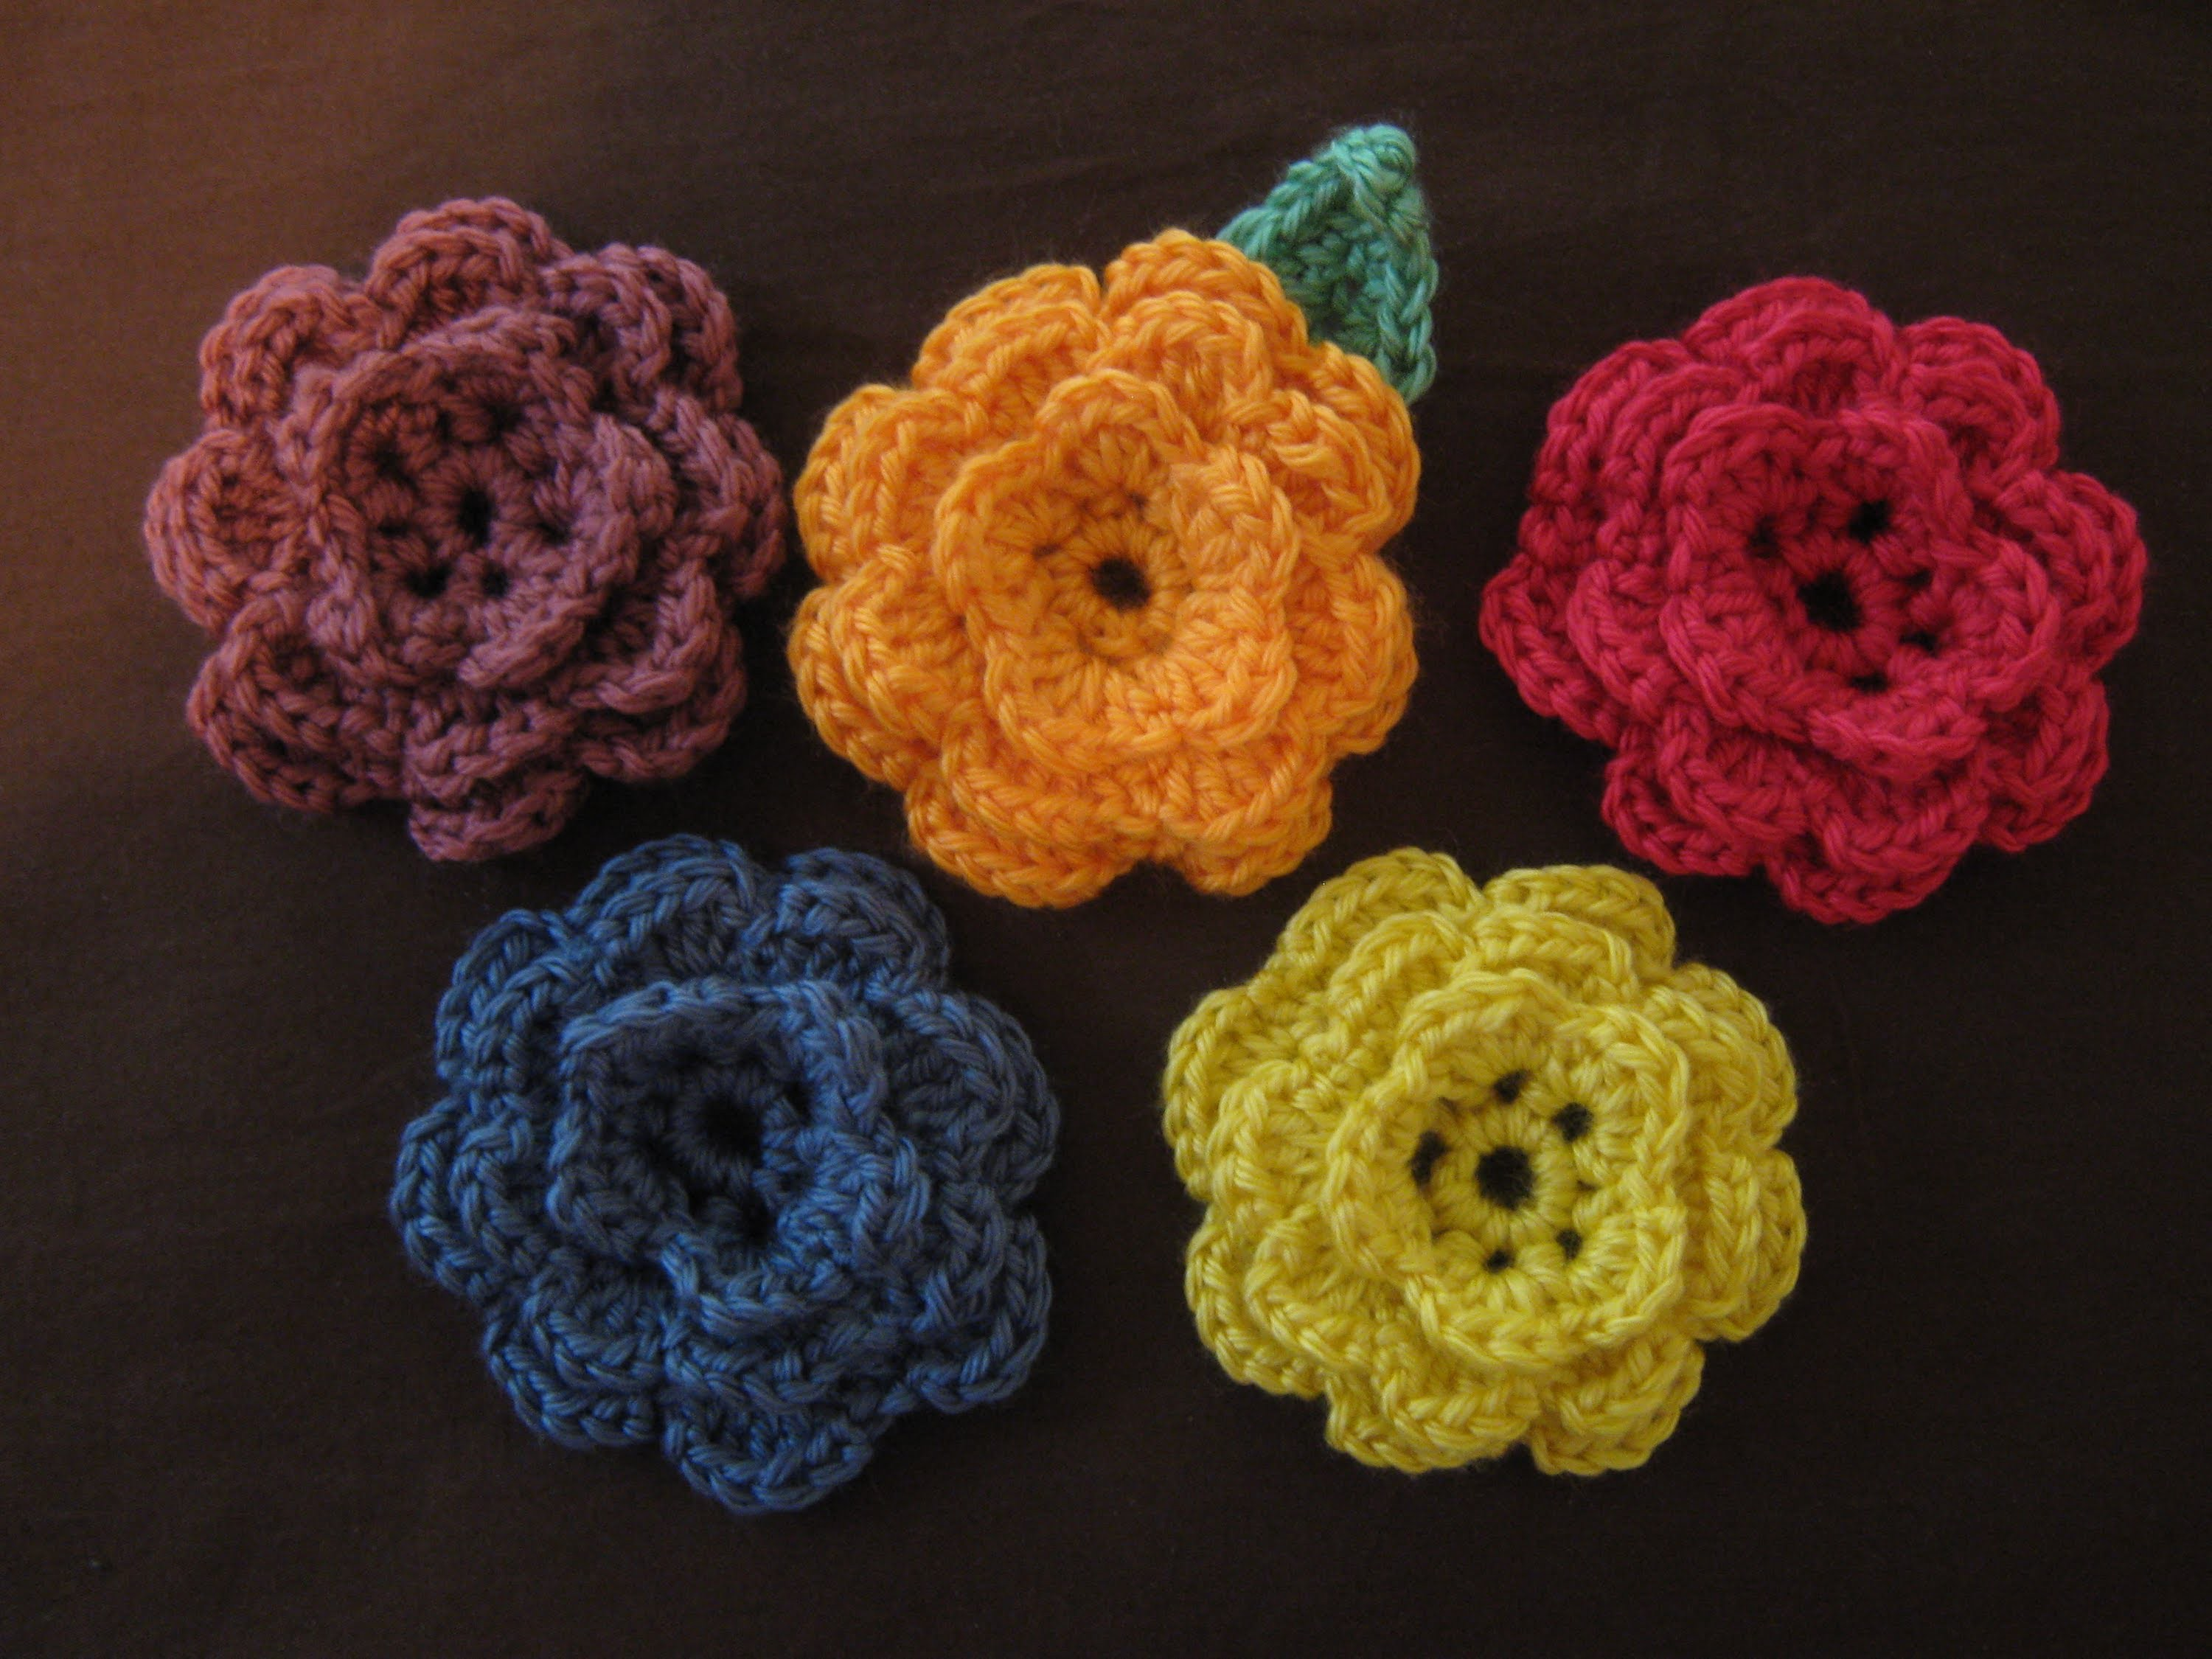 How to make a crocheted flower, part 3